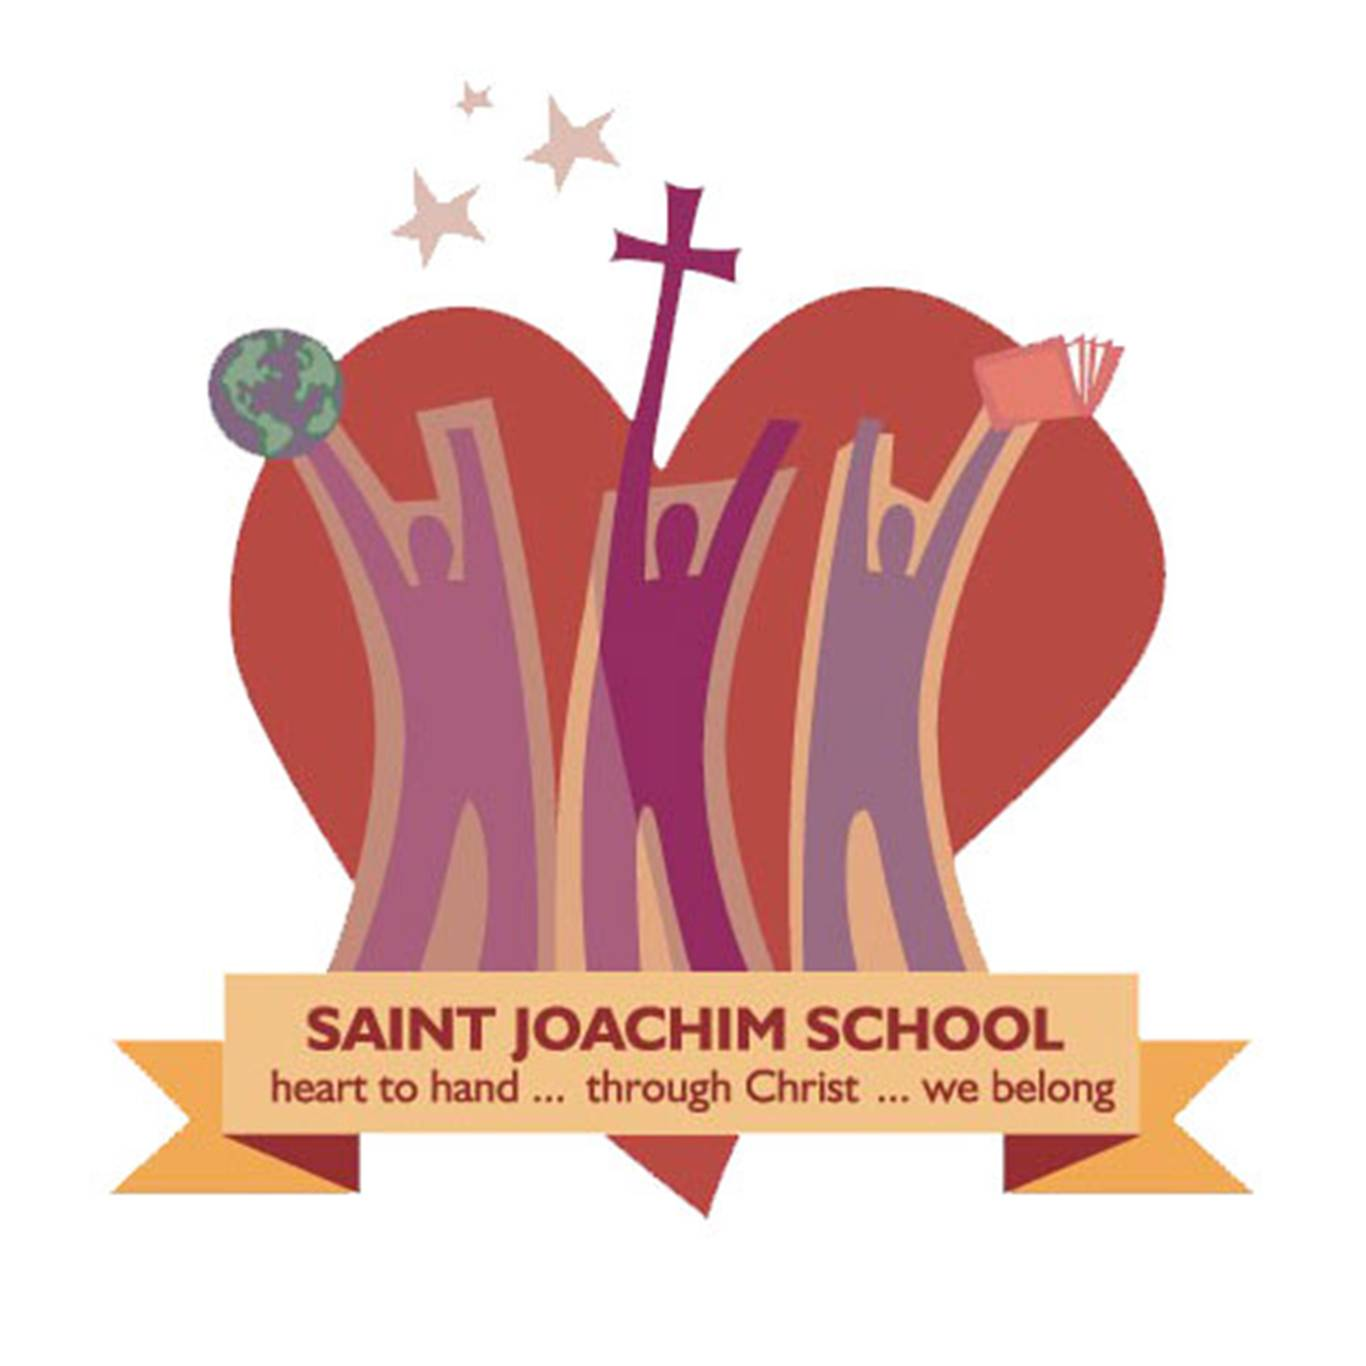 St. Joachim Bullying Prevention, Intervention and Follow-up Plan 2019-2020